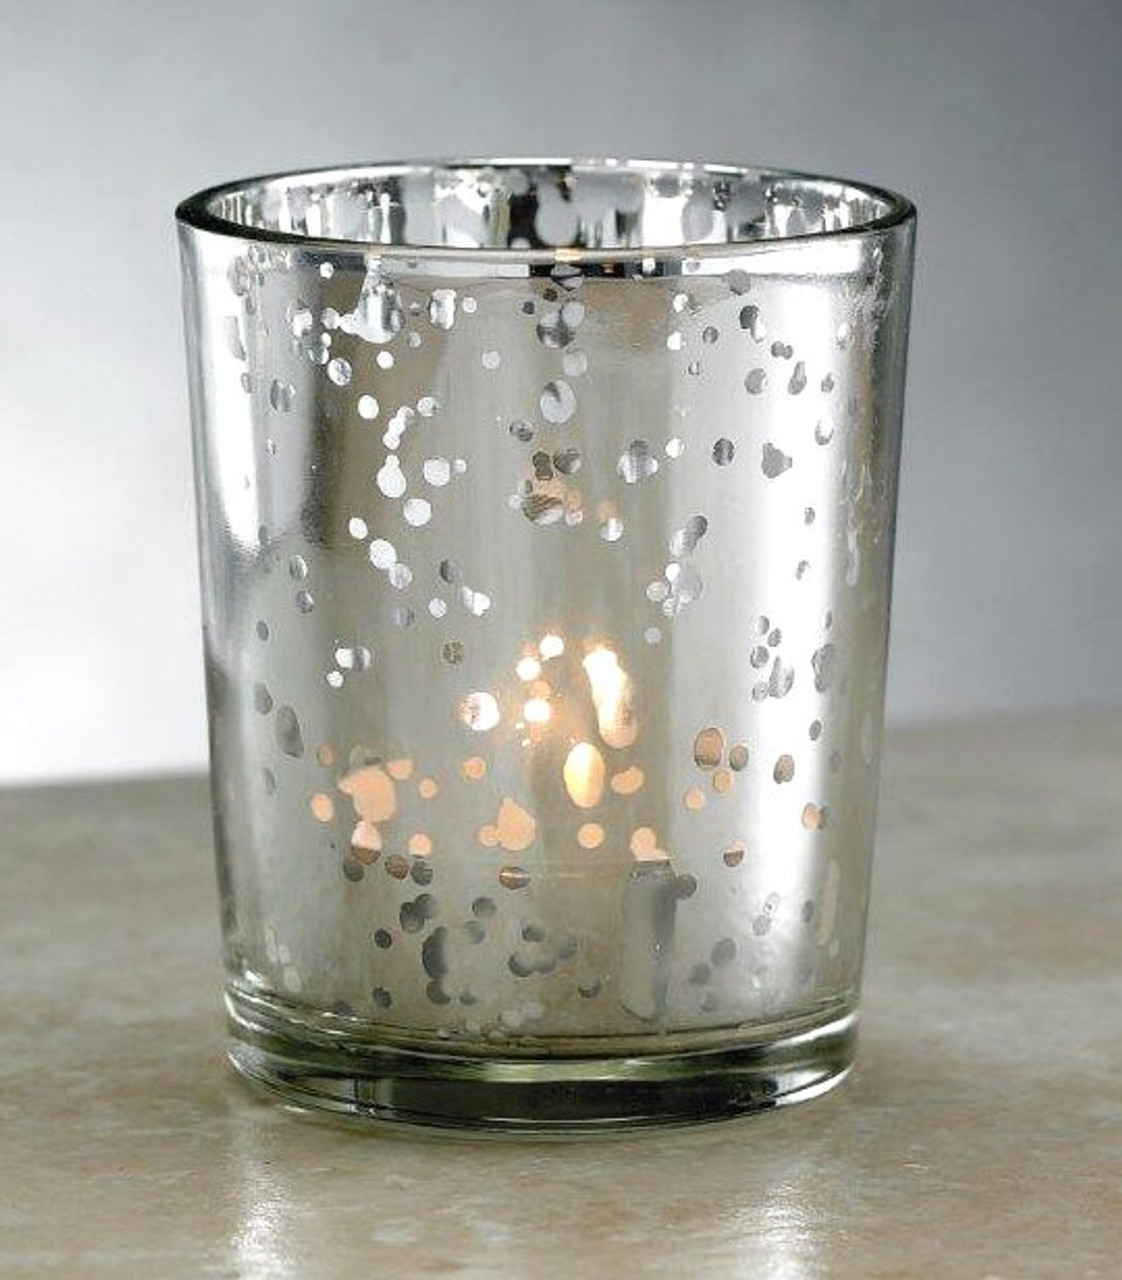 Silver Rustic Glass Tea Light Candle Holders Set Of 12 Candle Accessories